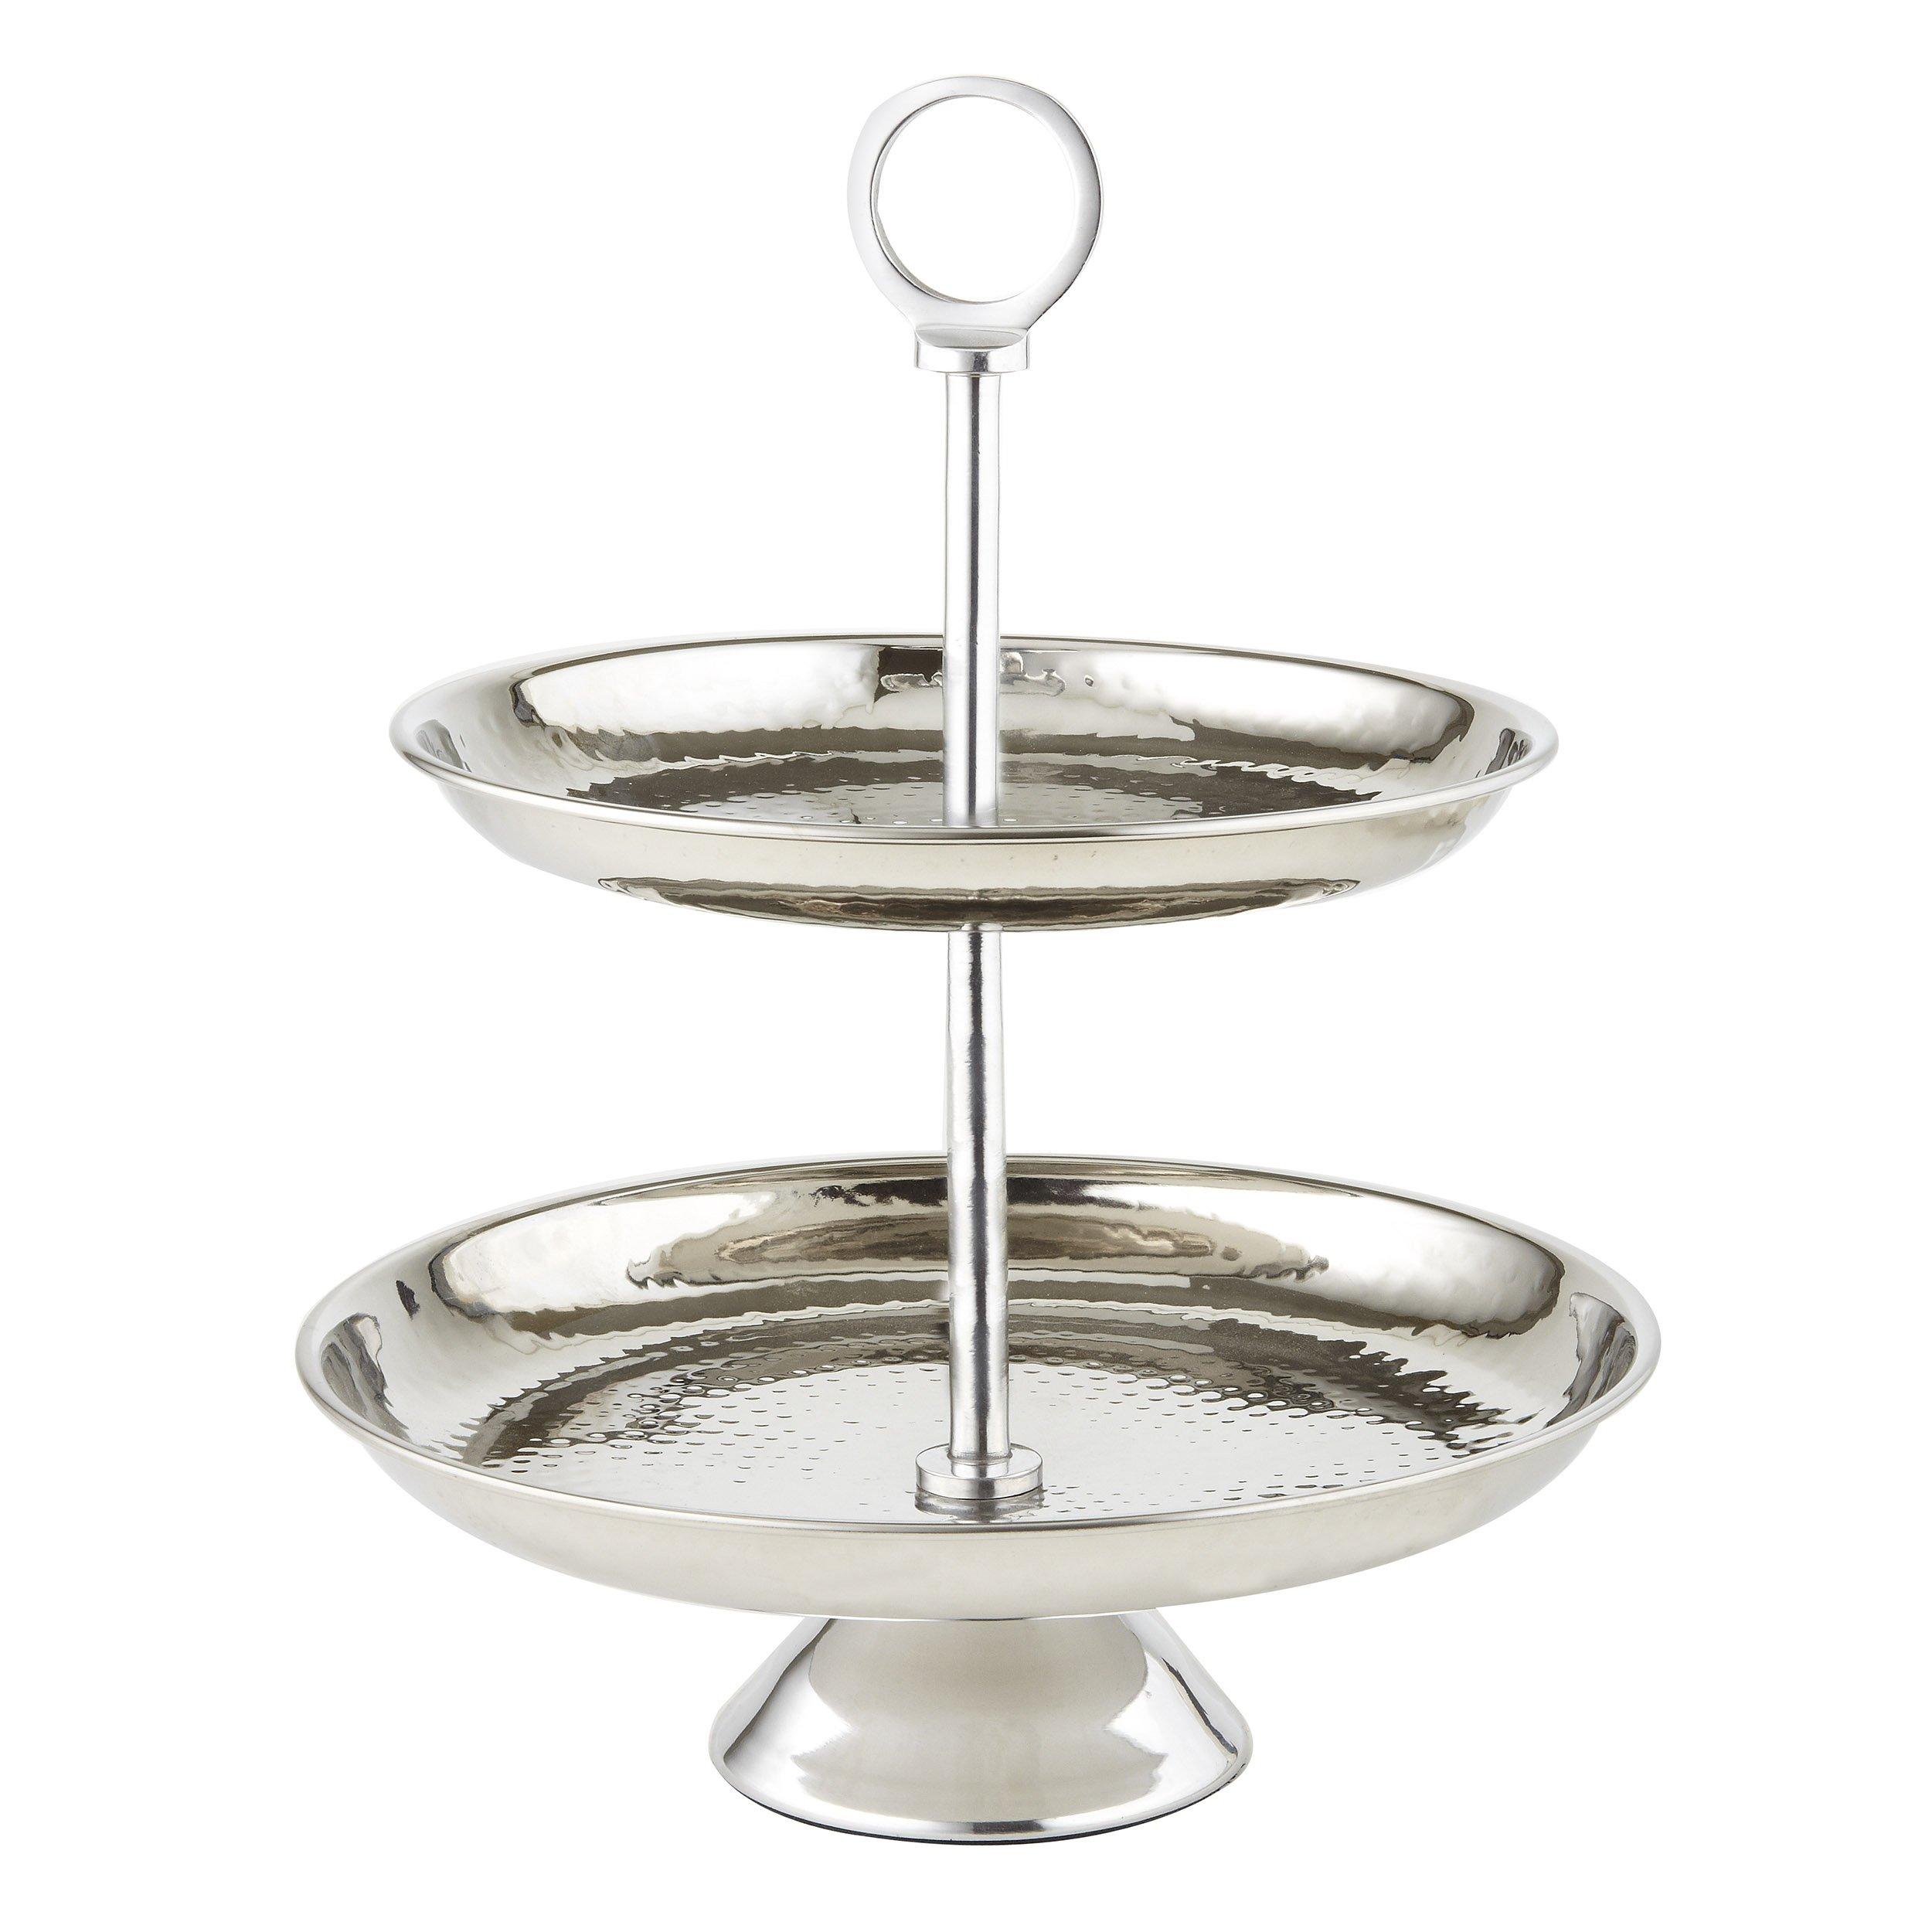 Elegance Stainless Steel Two Tier Tray, Silver